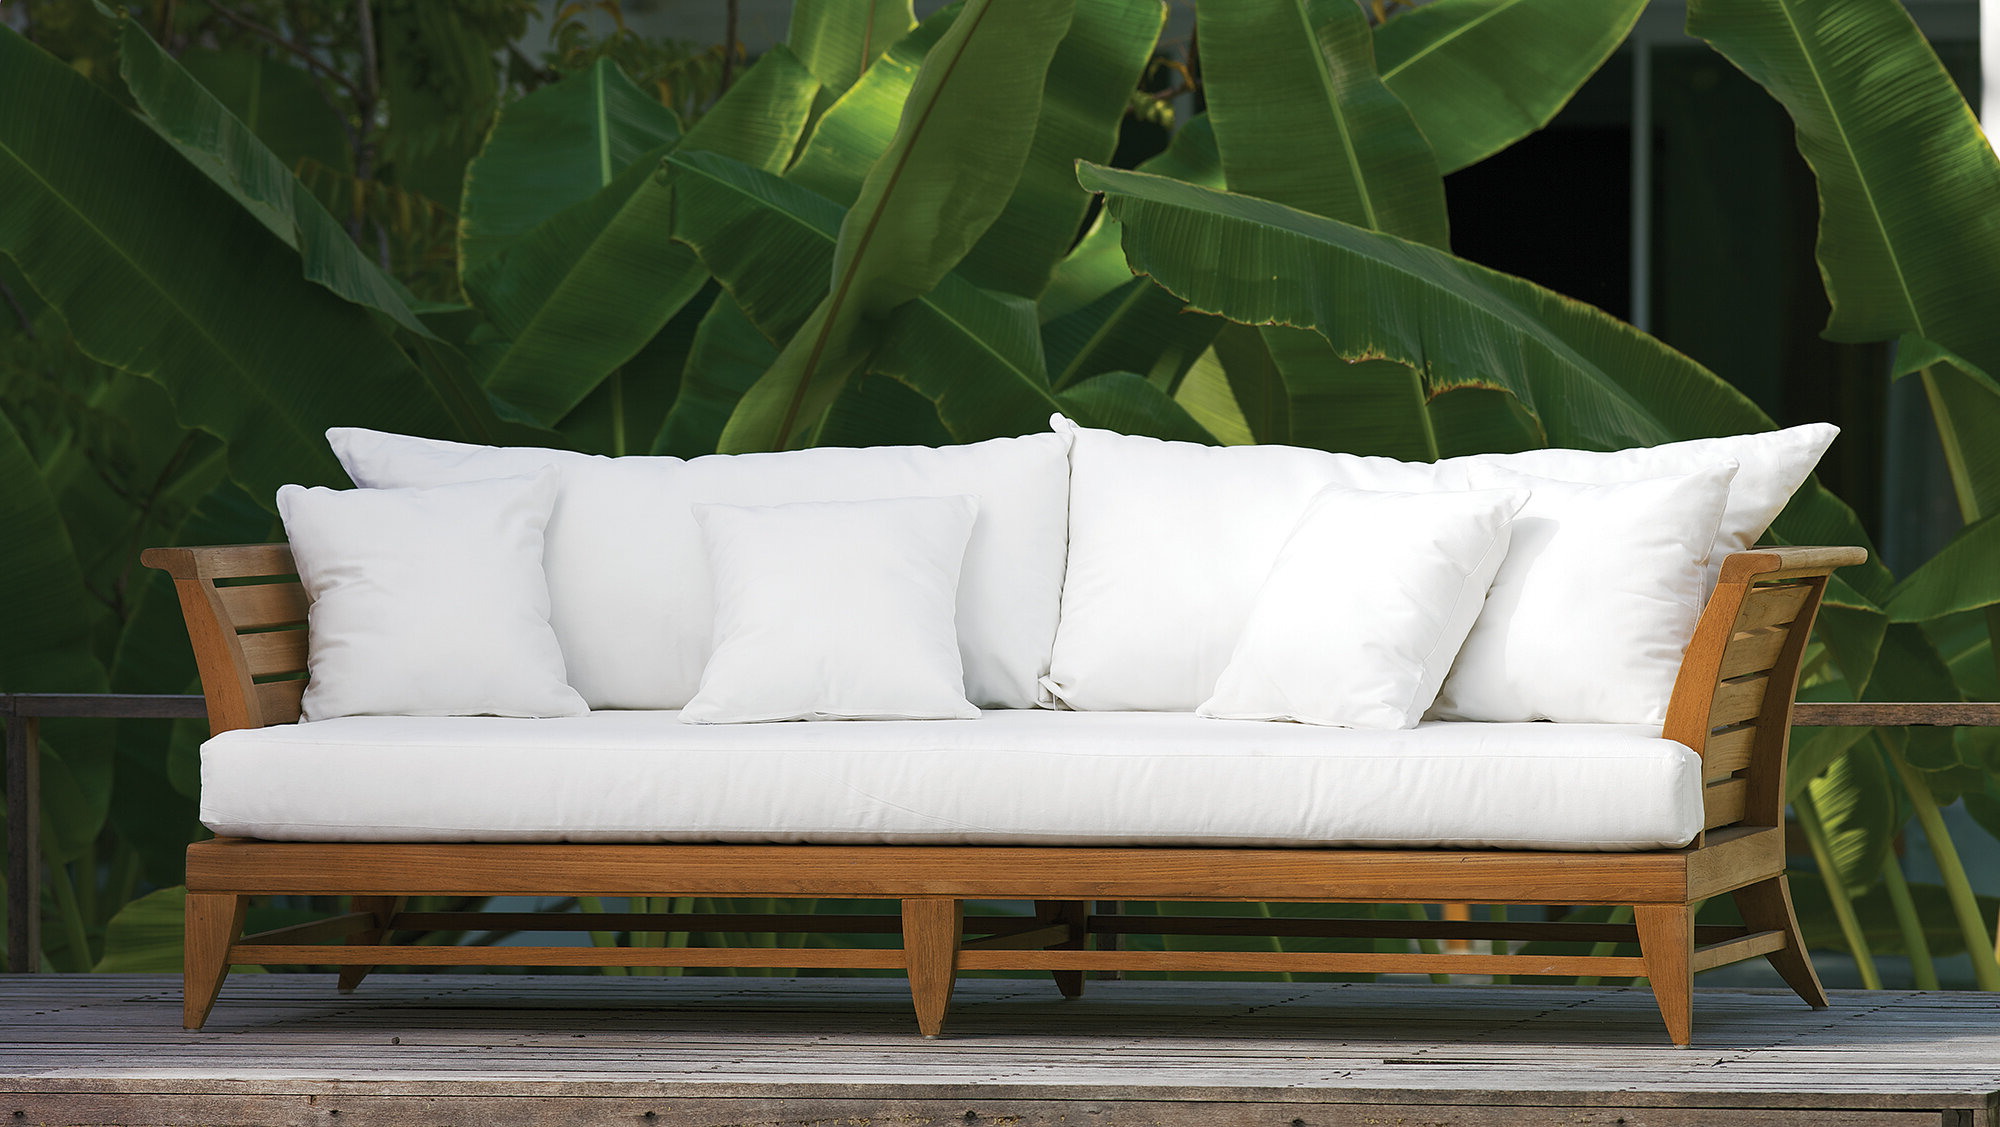 Clary Teak Lounge Patio Daybeds With Cushion For 2019 Limited Teak Patio Daybed With Cushion (View 6 of 20)